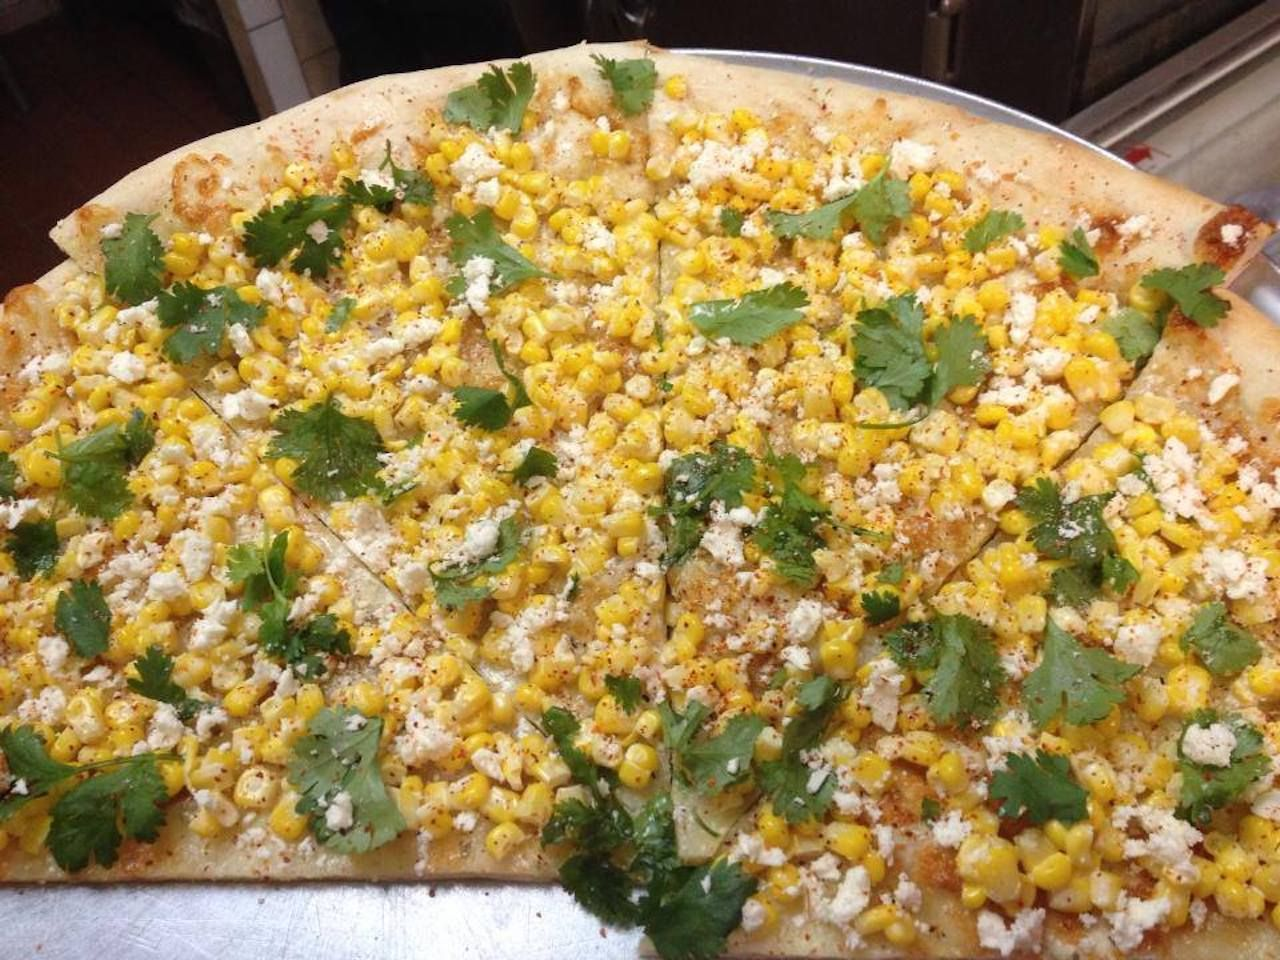 Pizza with corn, cheese, and an herb garnish